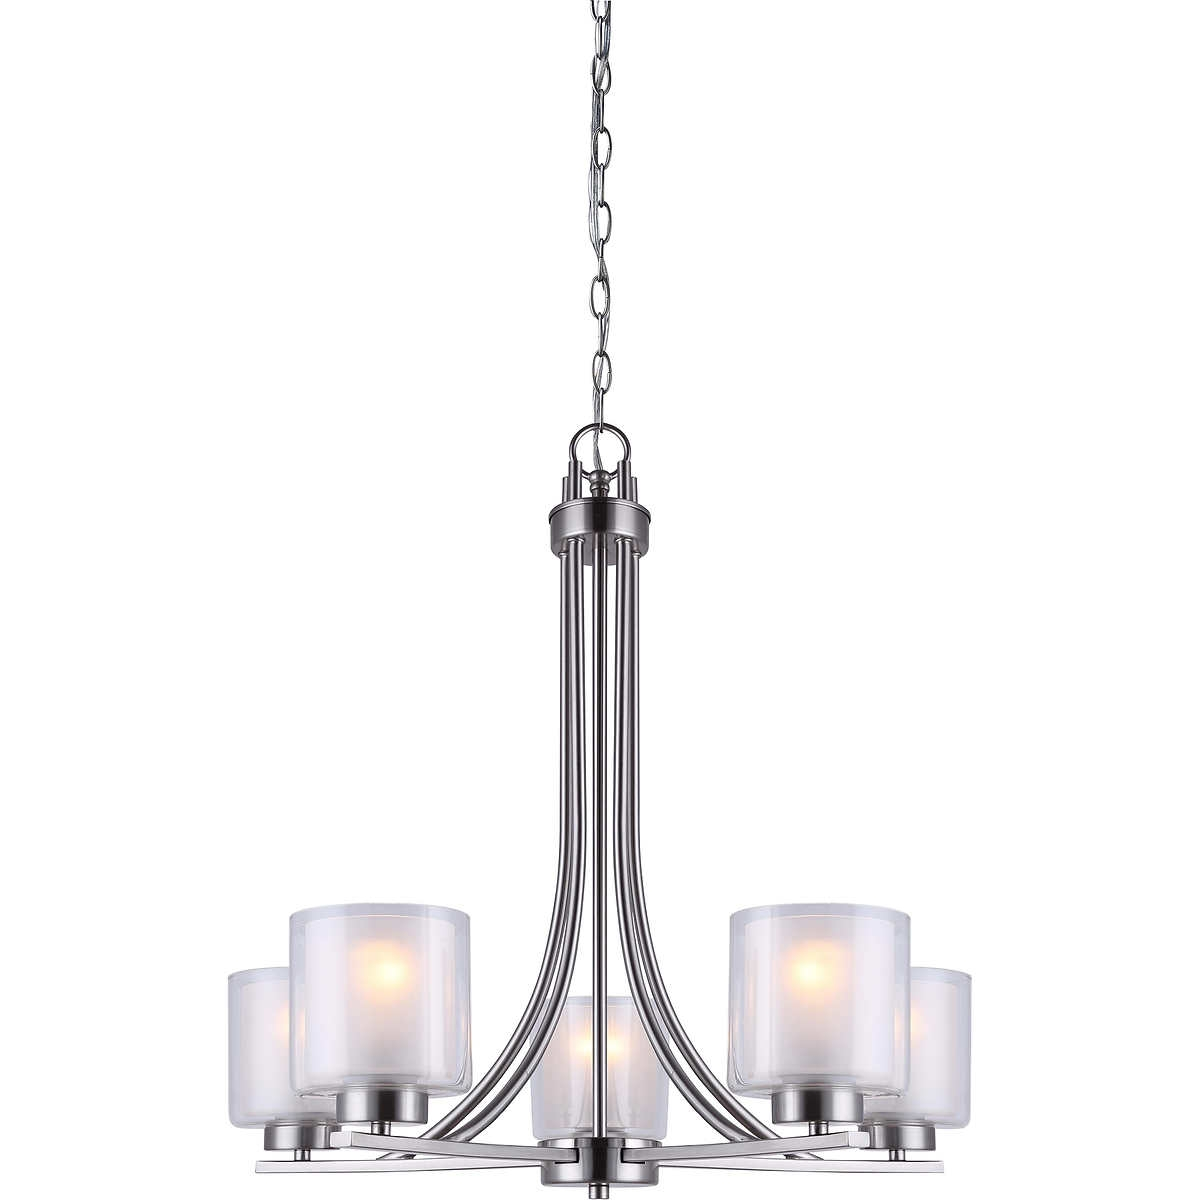 Chandelier Extraordinary Costco Chandelier 2017 Design Ideas 7 Inside Costco Lighting Chandeliers (Image 2 of 14)